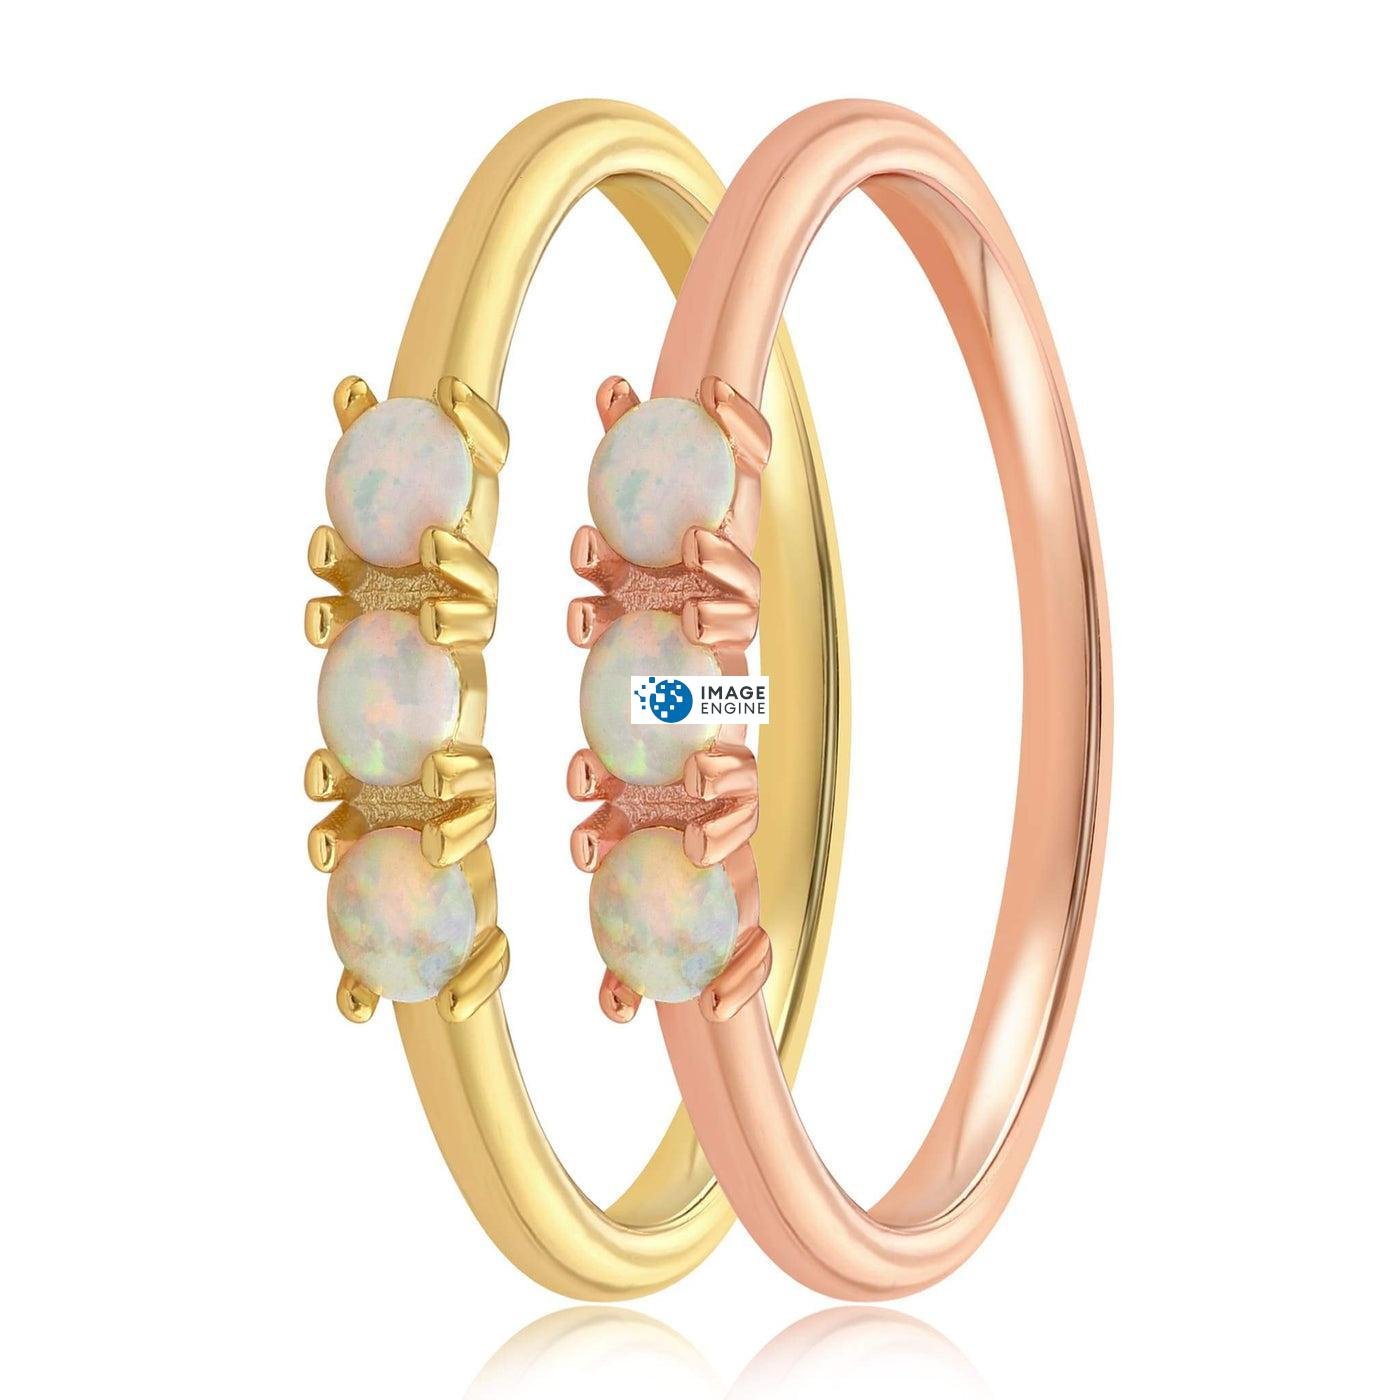 Simple Dots White Fire Opal Ring - Side by Side - 18K Yellow Gold Vermeil and 18K Rose Gold Vermeil